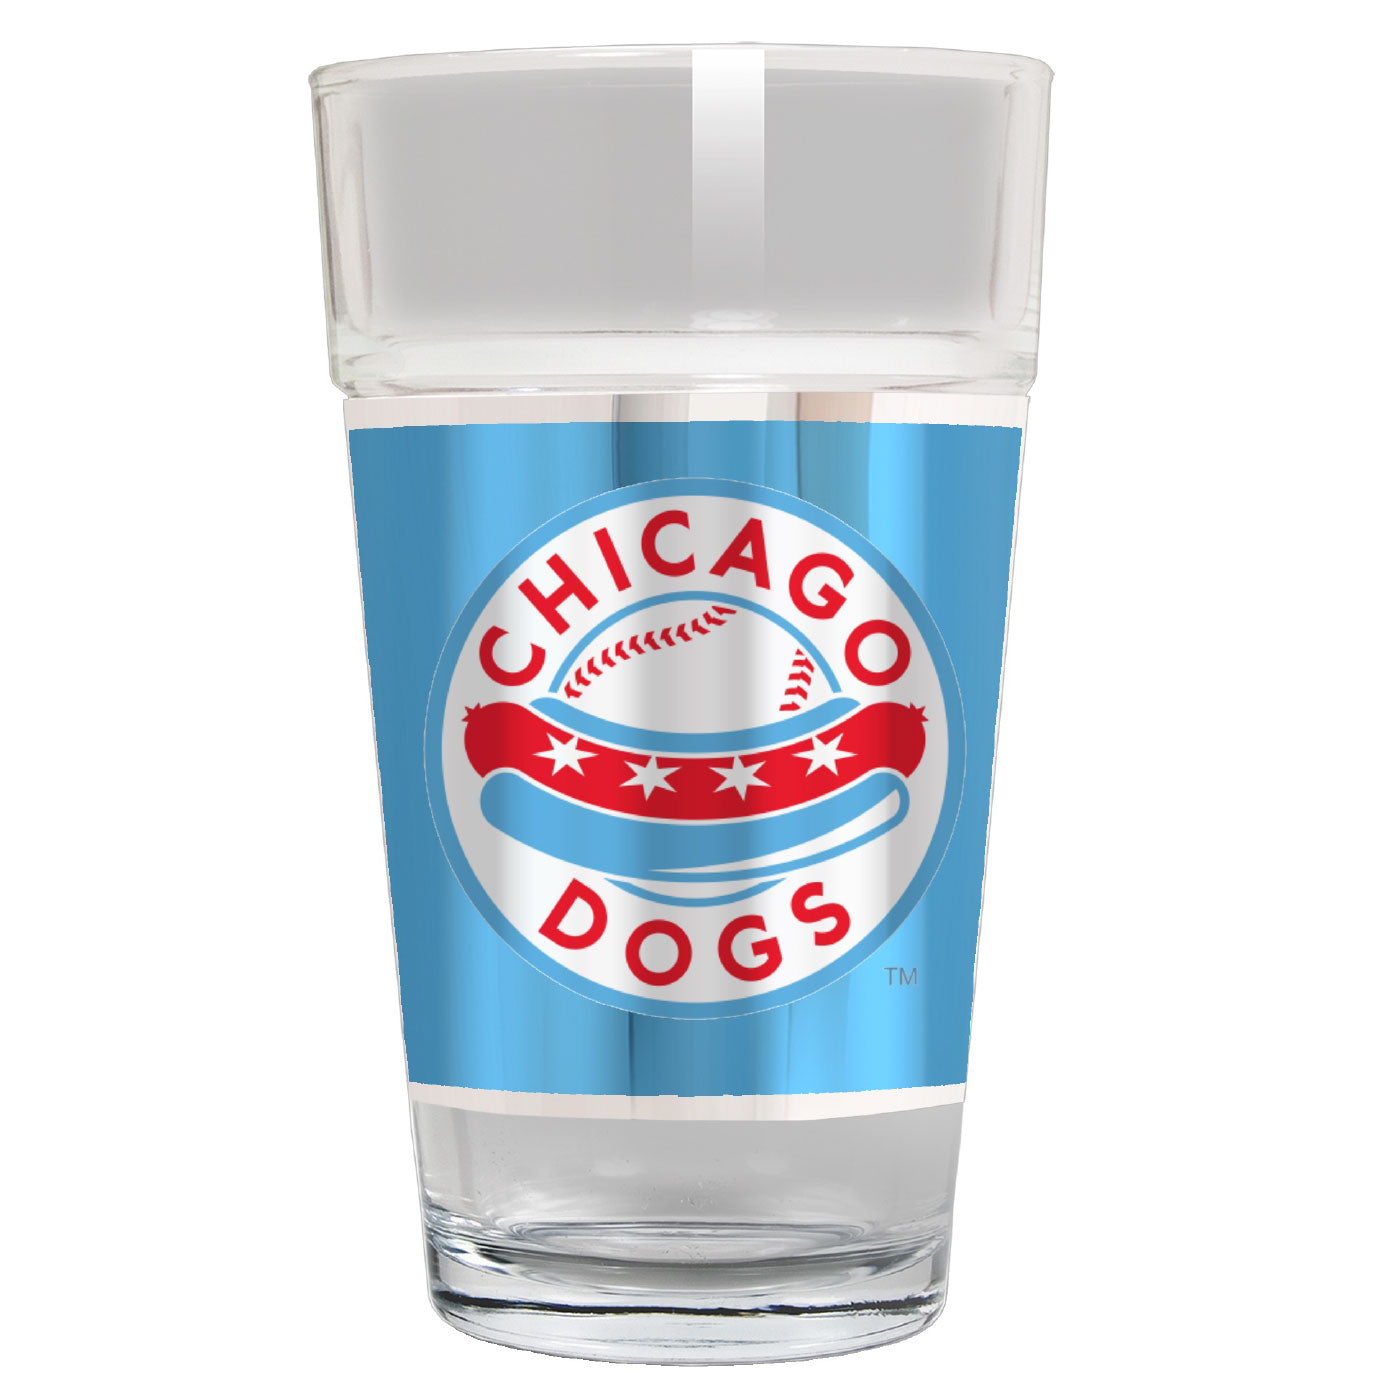 Chicago Dogs Wrapped Pint Glass